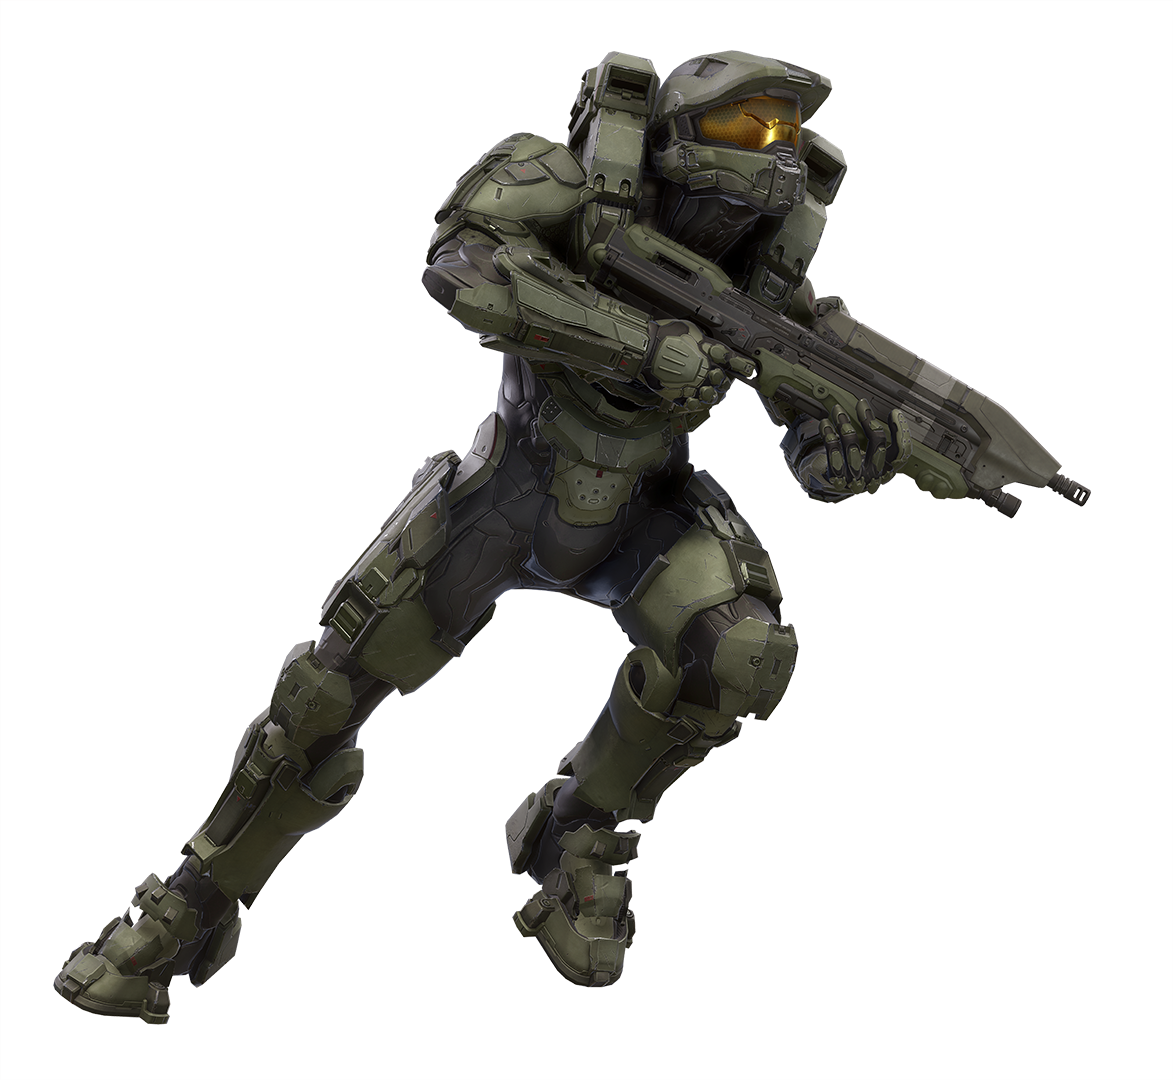 Halo 5 Guardians Render - The Master Chief | Halo | Pinterest ...